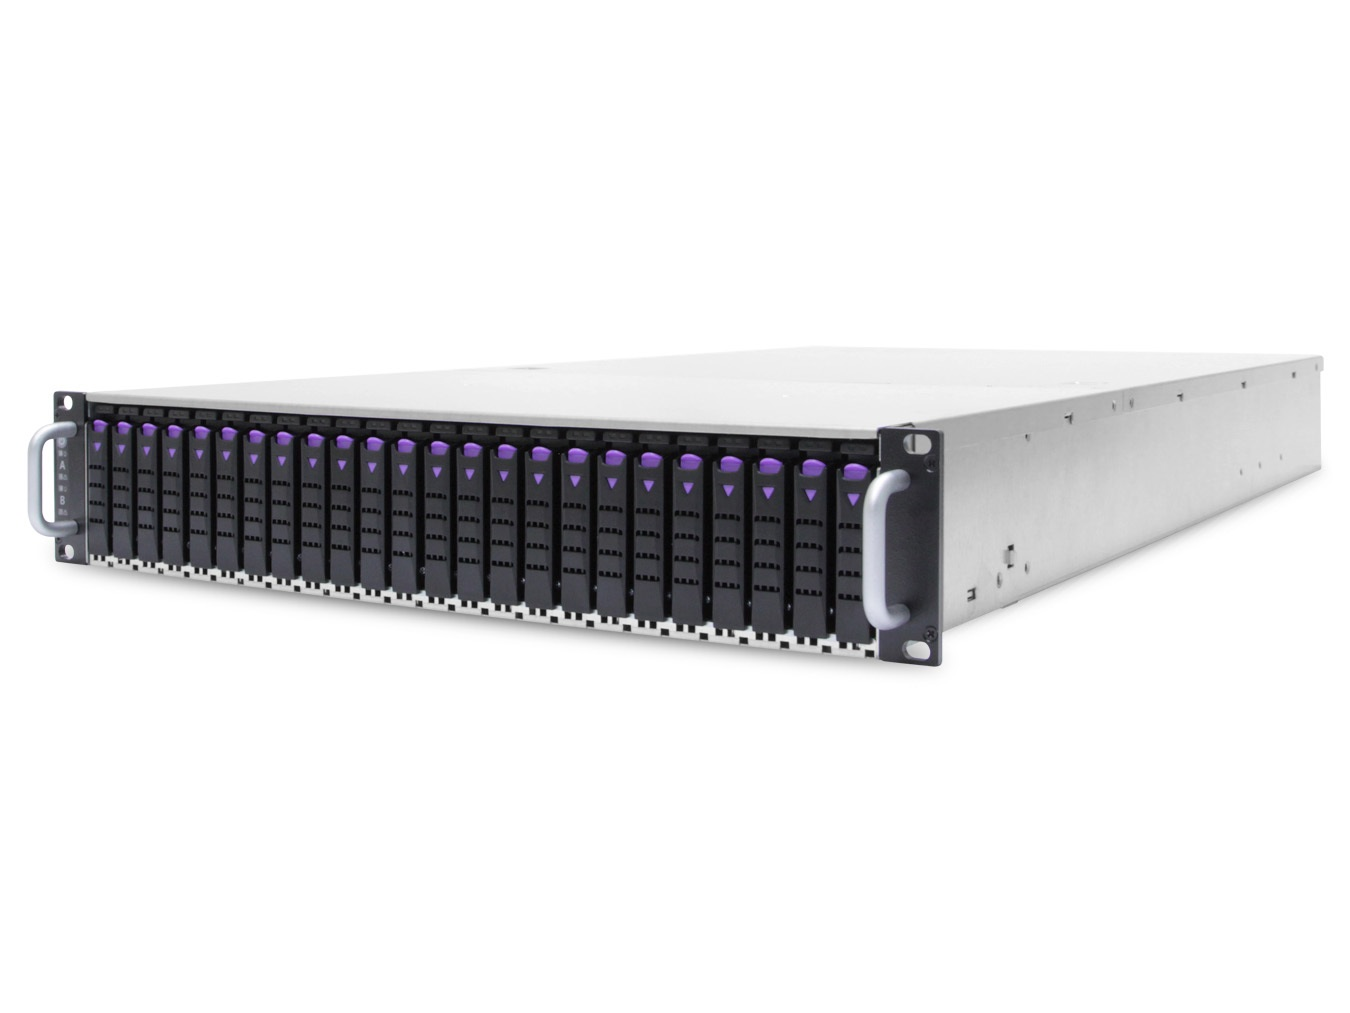 AIC HA202-PH XP1-A202PH03 2U 24-Bay NVMe Storage Server